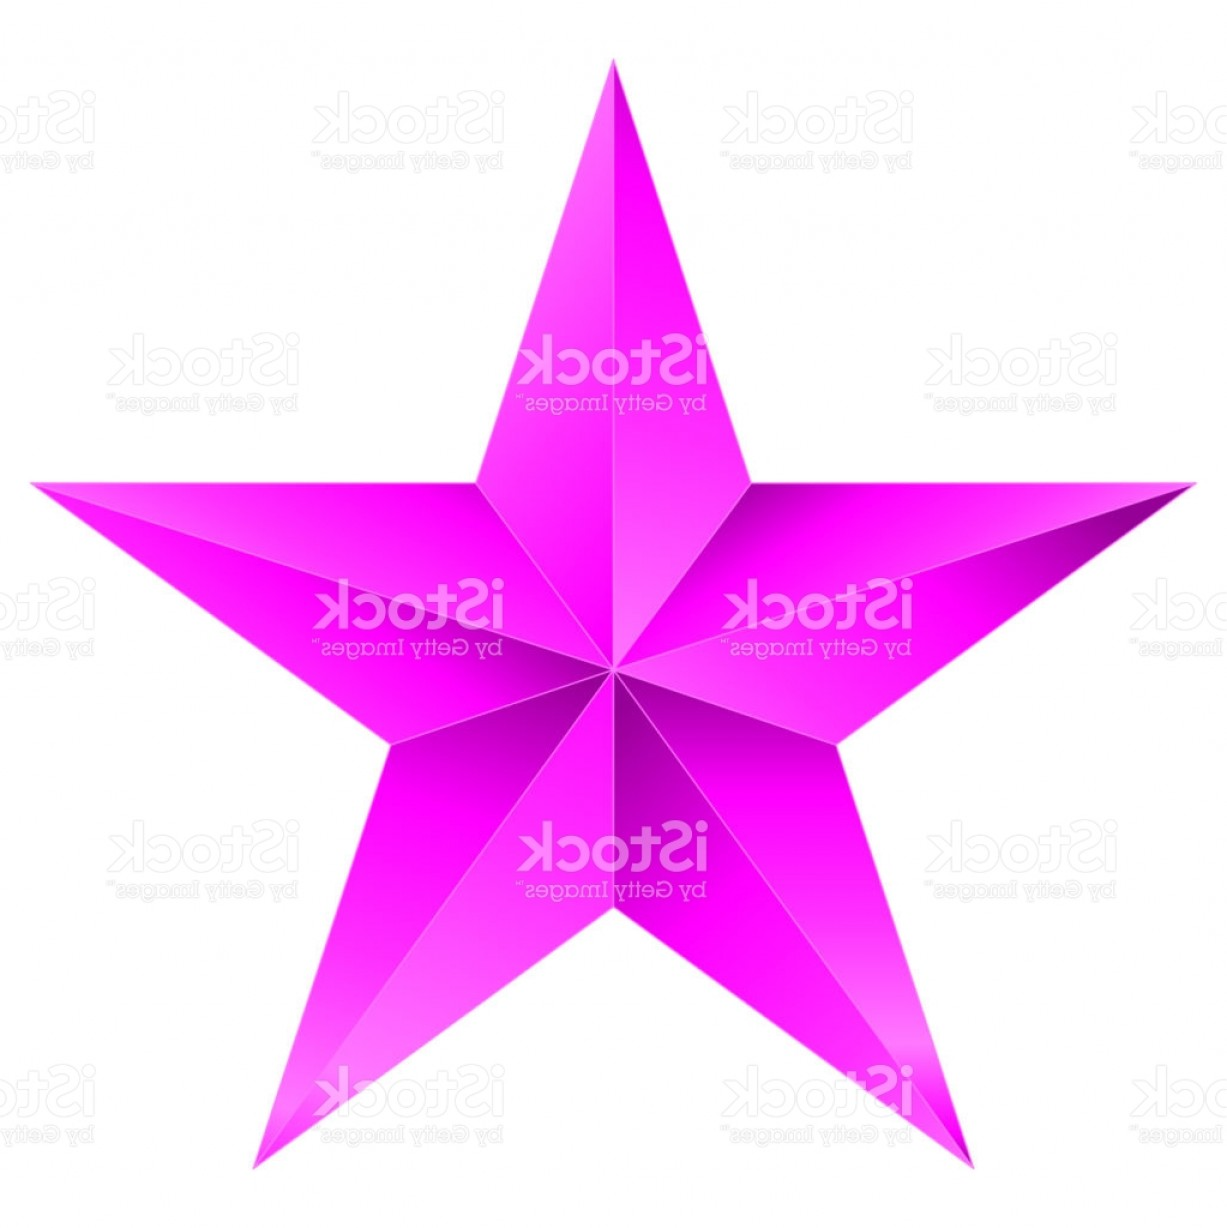 5 Point Star Vector Art: Christmas Star Purple Point Star Isolated On White Gm